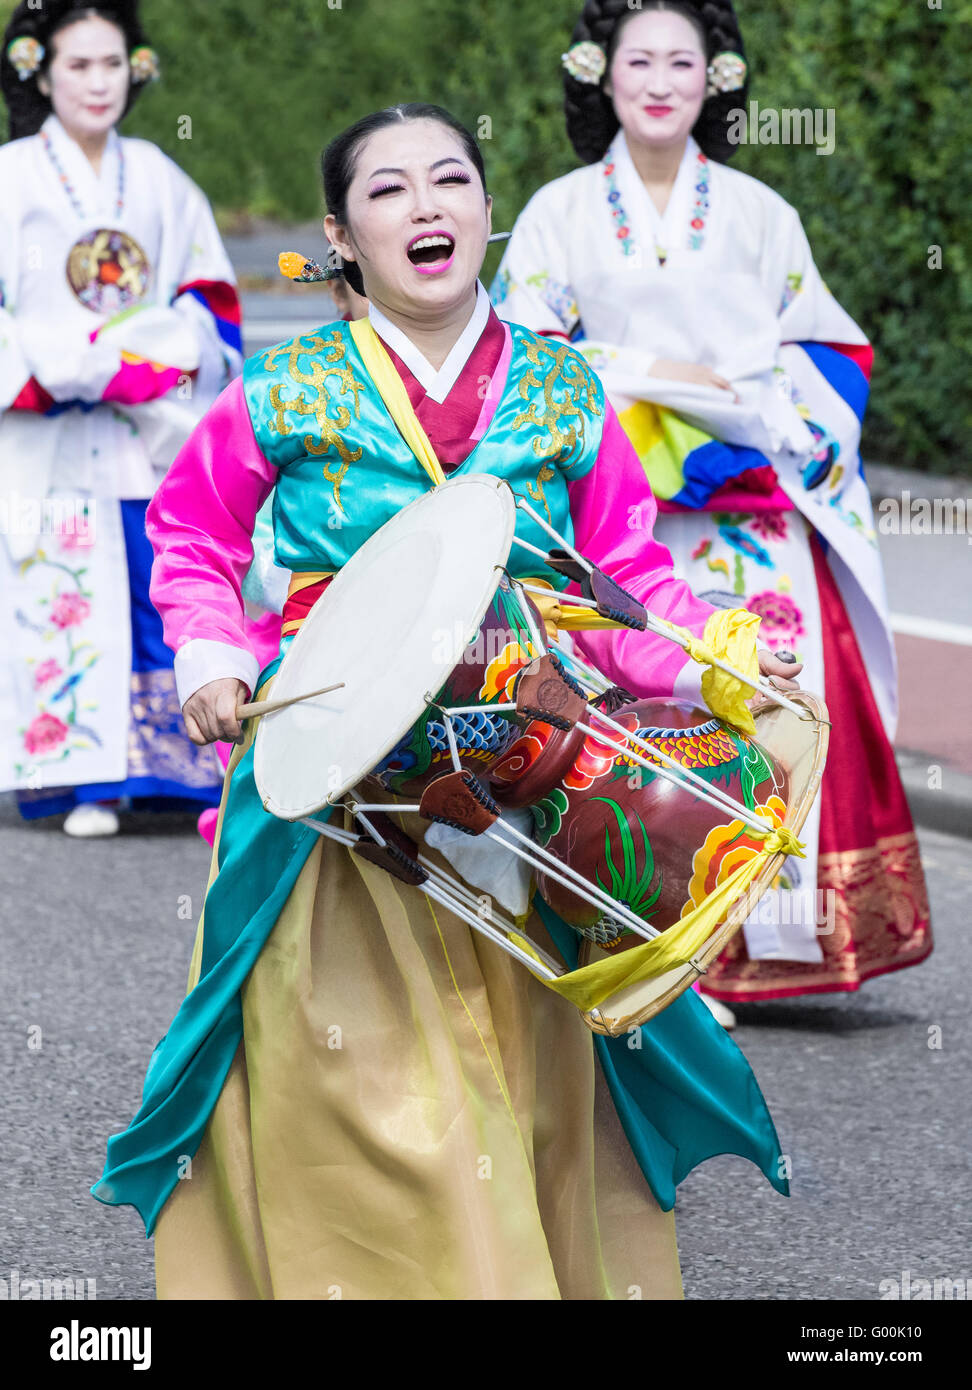 Musician and dancers from South Korea in traditional costume. - Stock Image